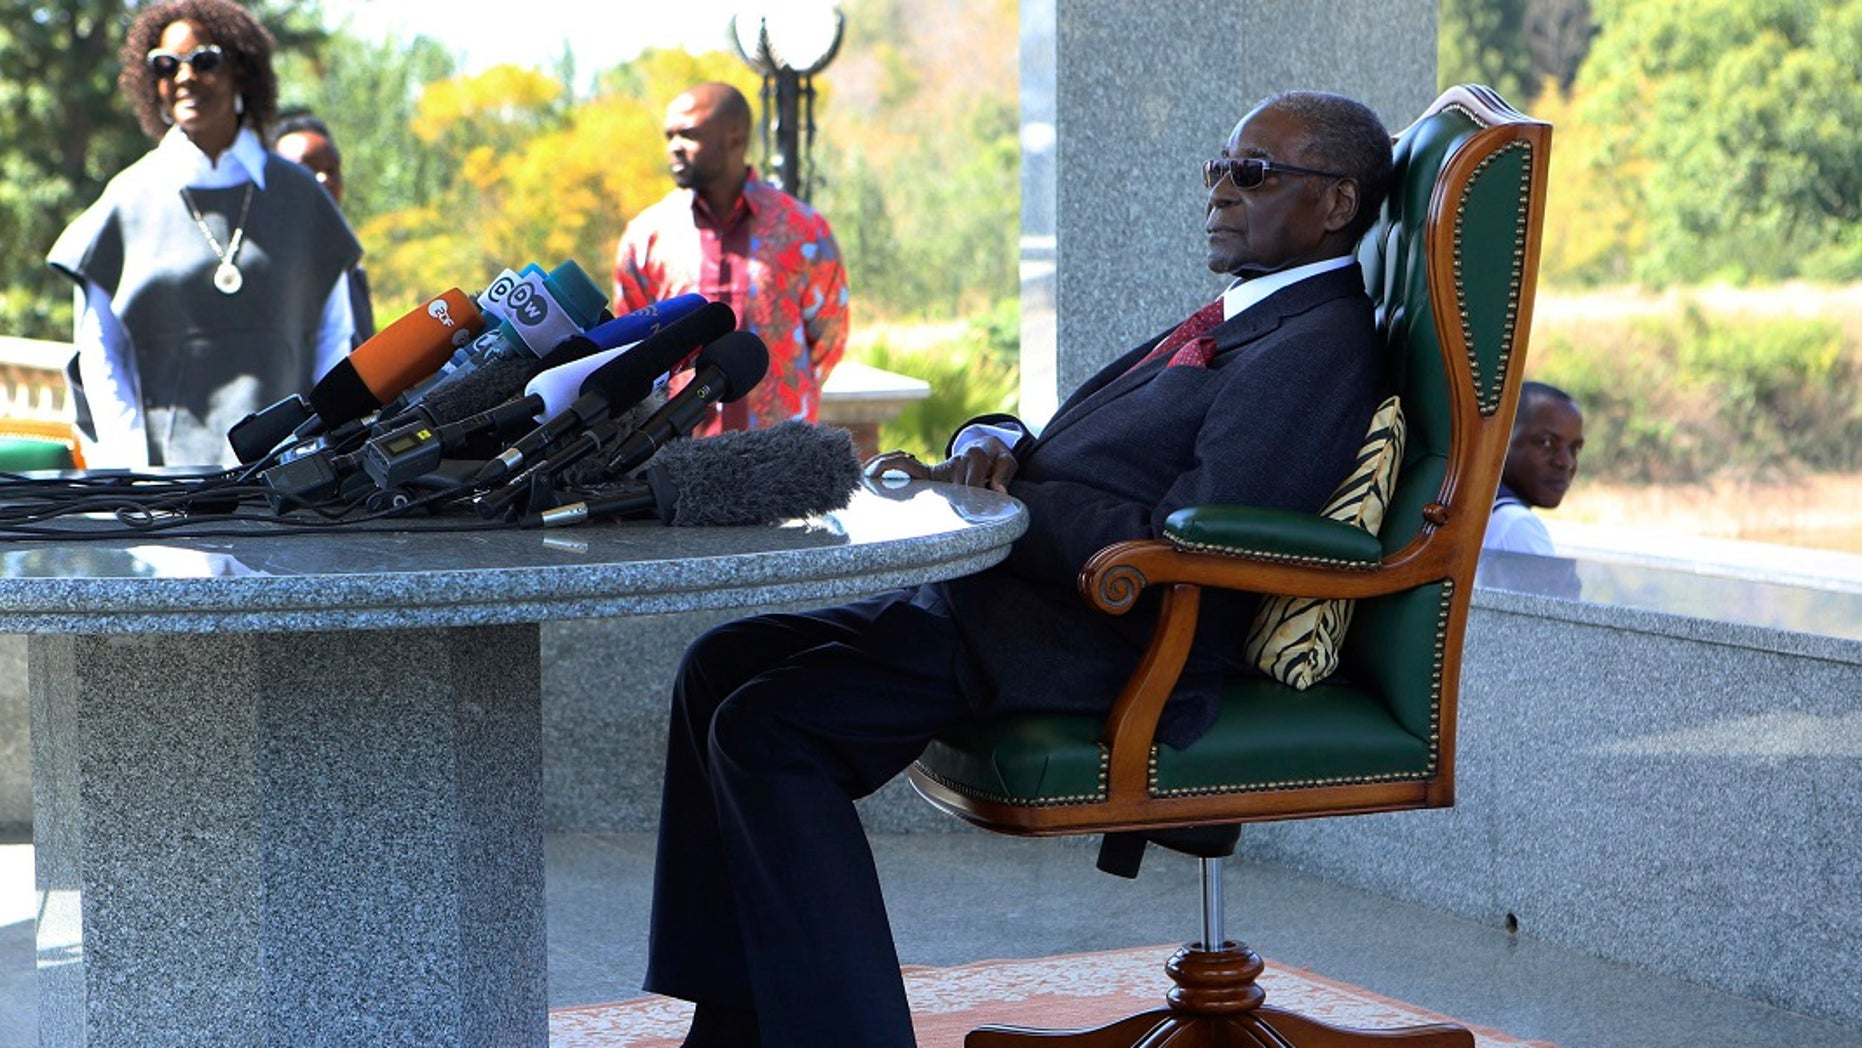 Robert Mugabe reportedly unable to Walk as health declines